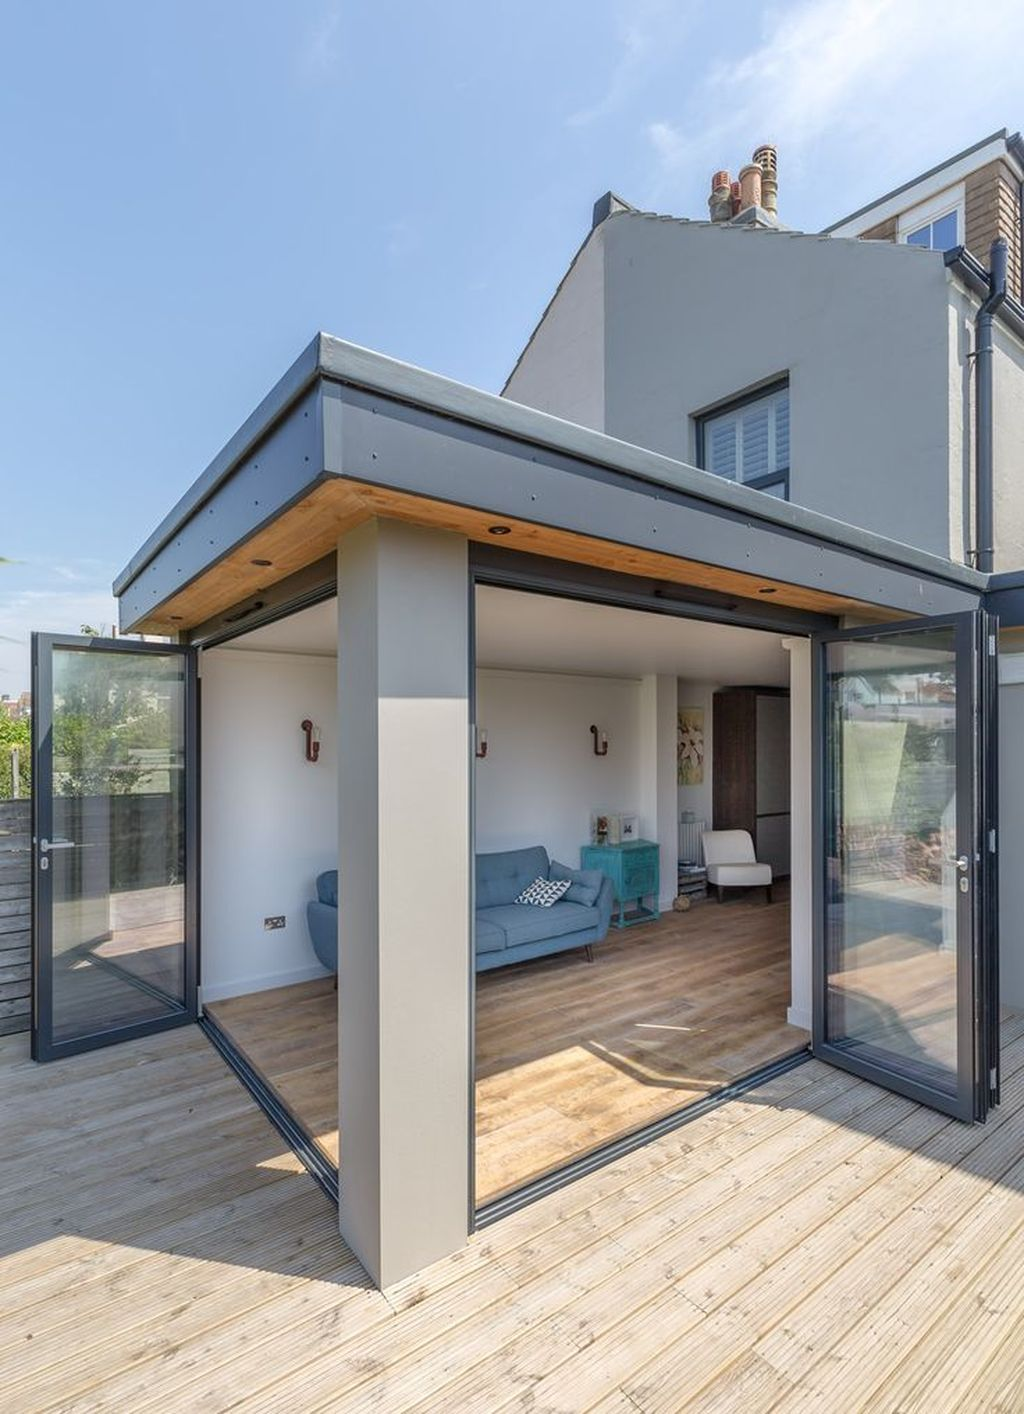 36 Attractive Contemporary Flat Roof Design Ideas For Your House In 2020 Garden Room Extensions House Extension Design Flat Roof Design